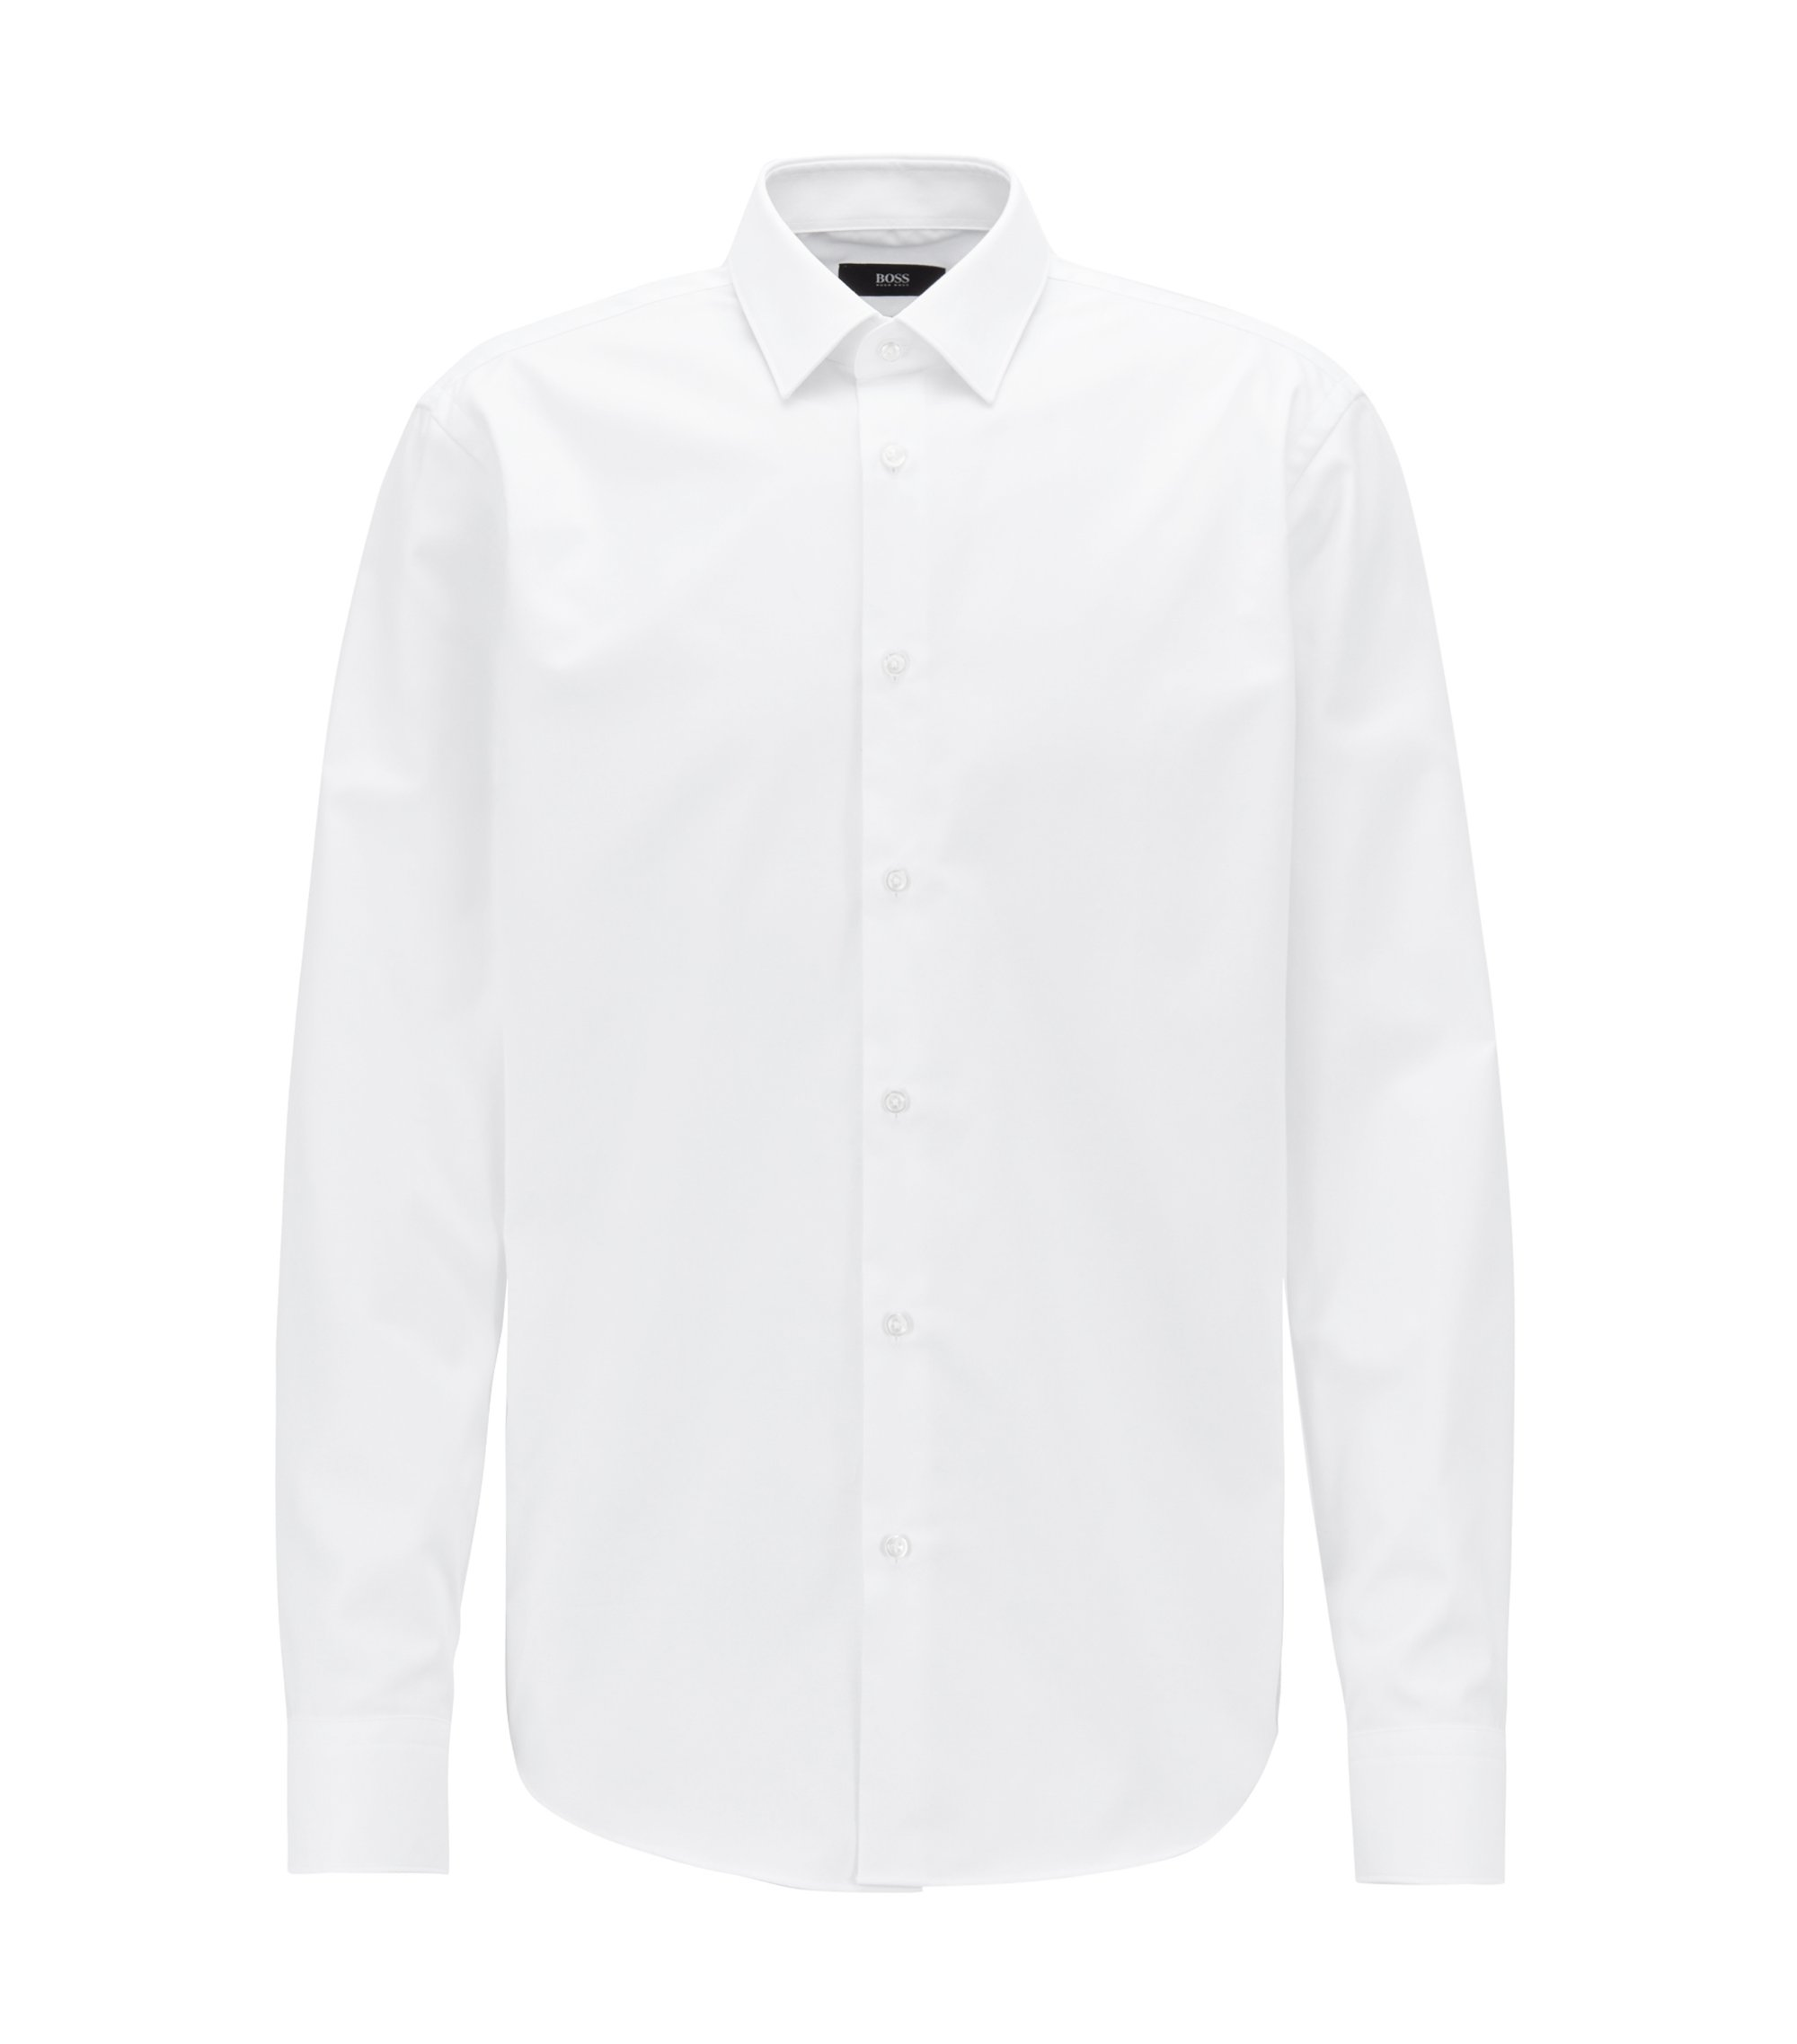 Regular-fit shirt in Fresh Active cotton, White